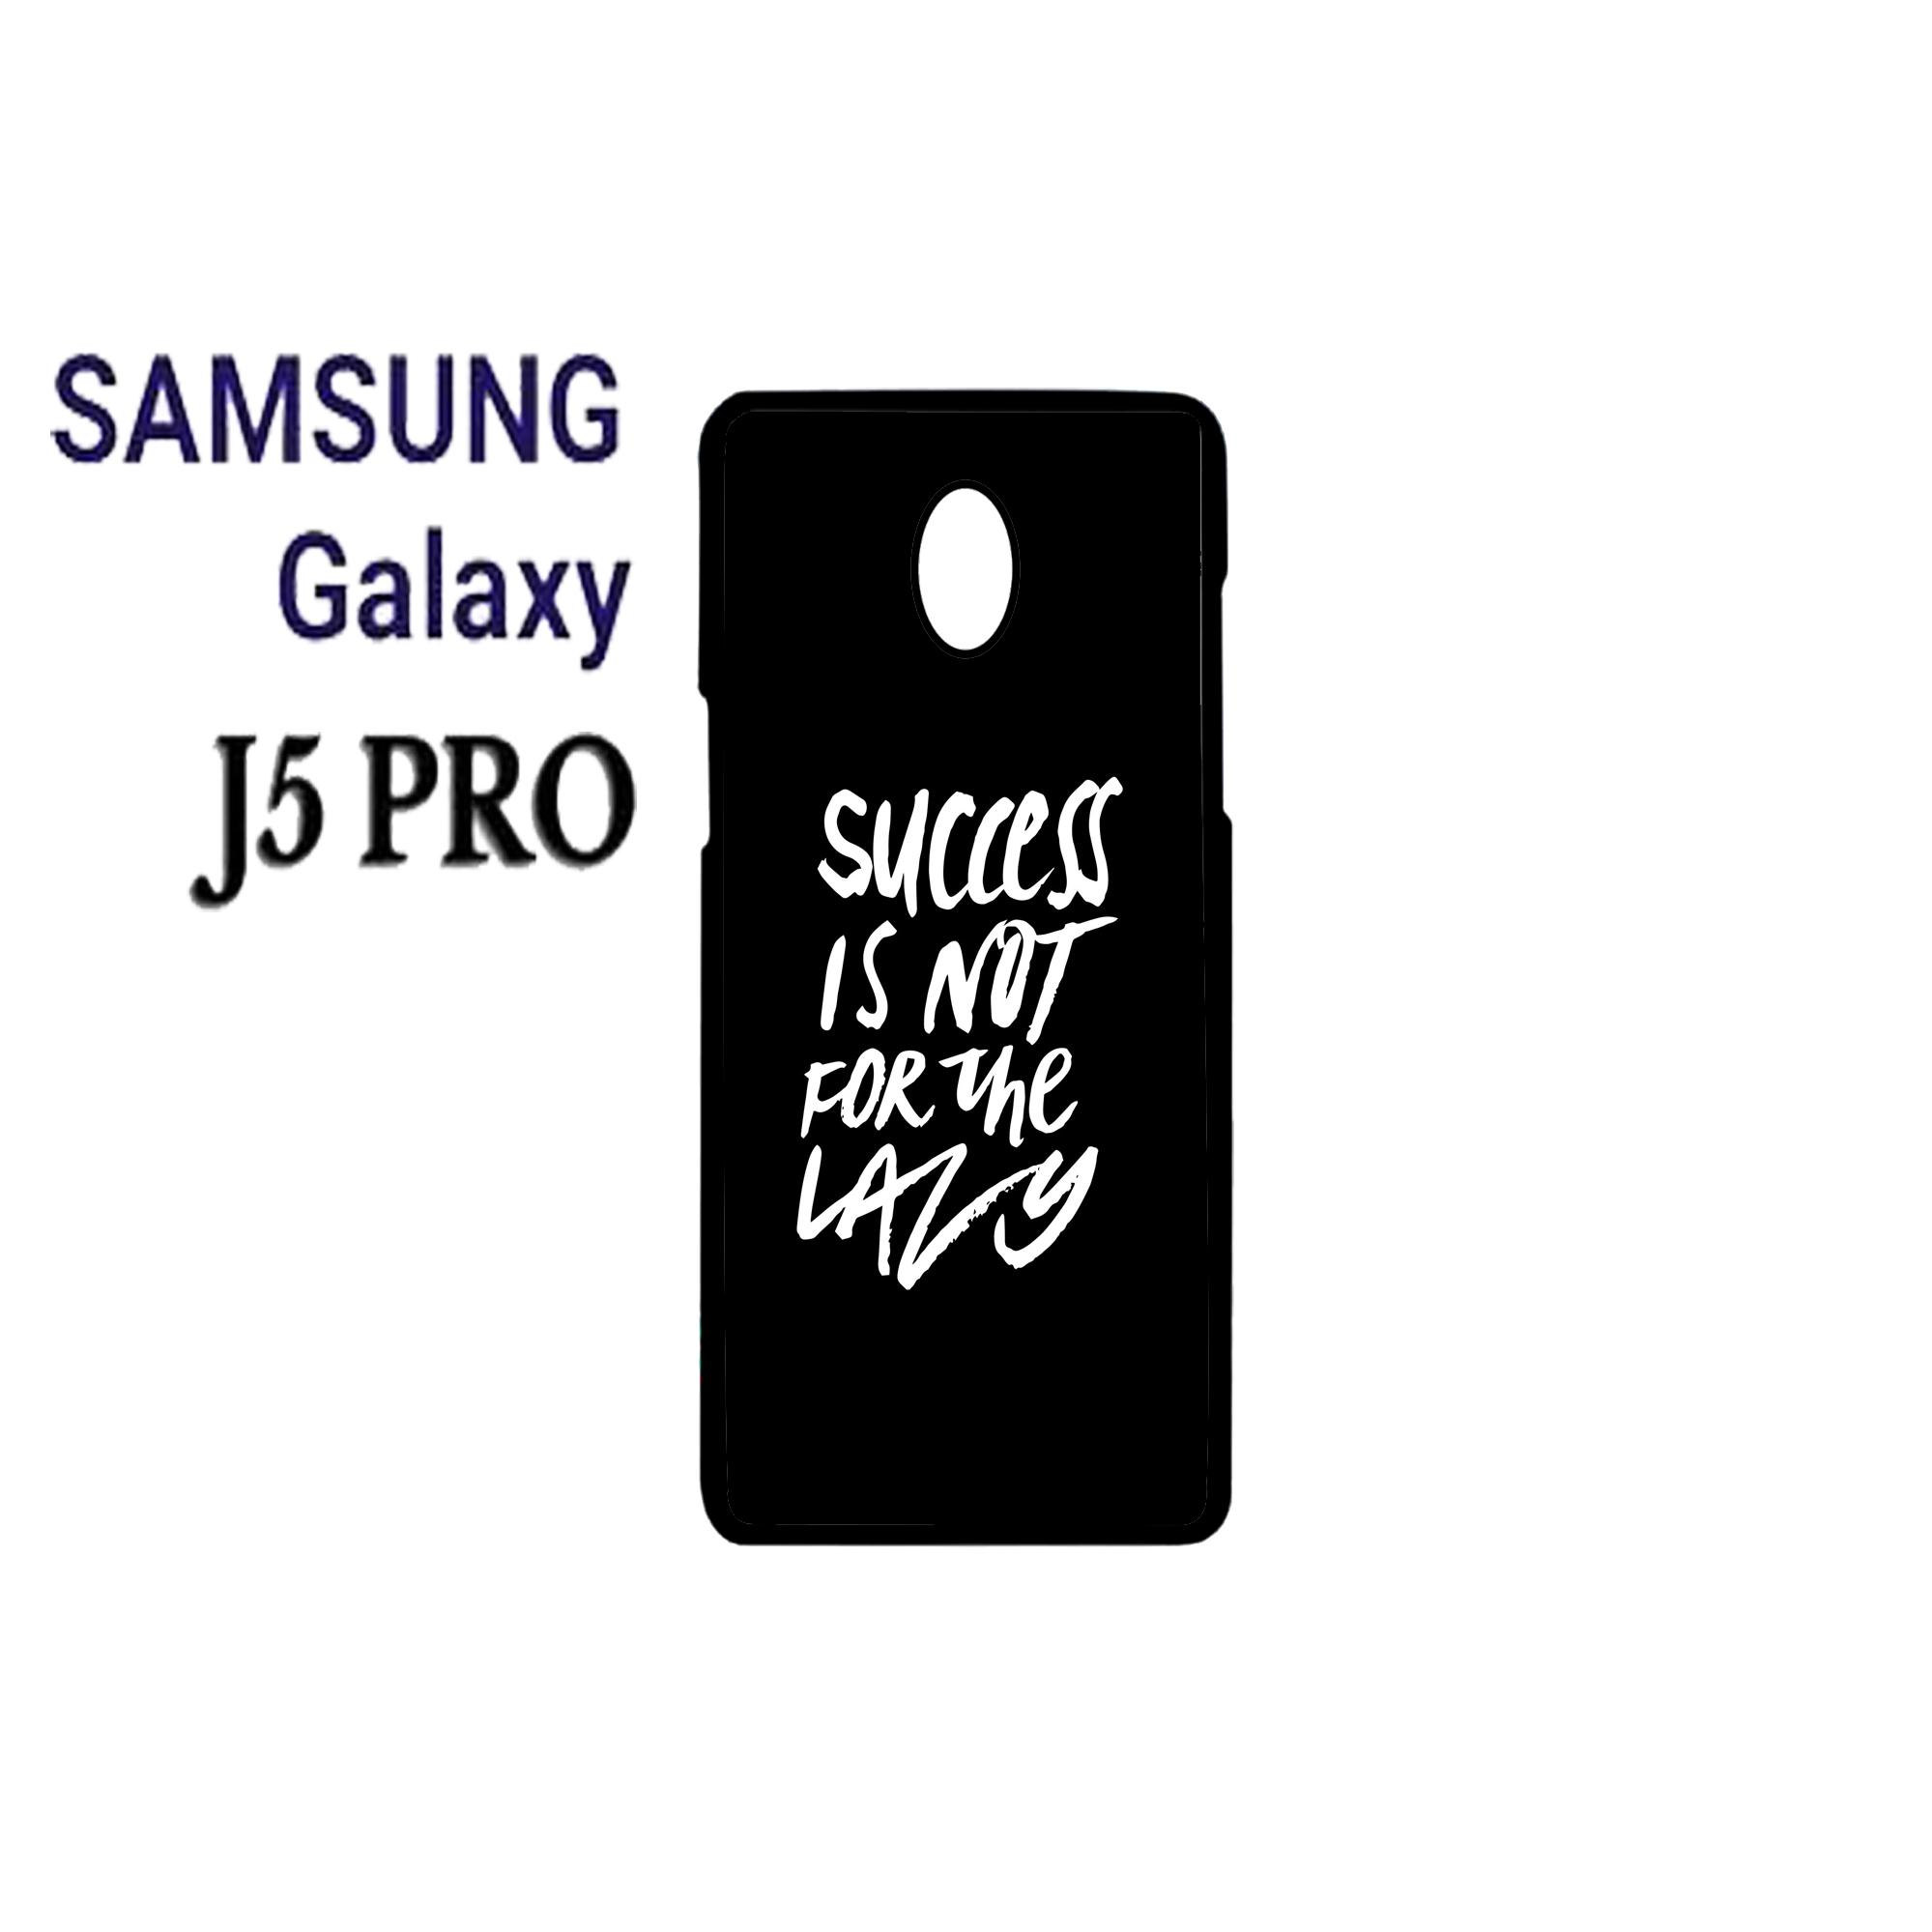 BCS Custom Keren Fashion Phone Case New Samsung Galaxy J3 ProIDR38000. Rp 38.000